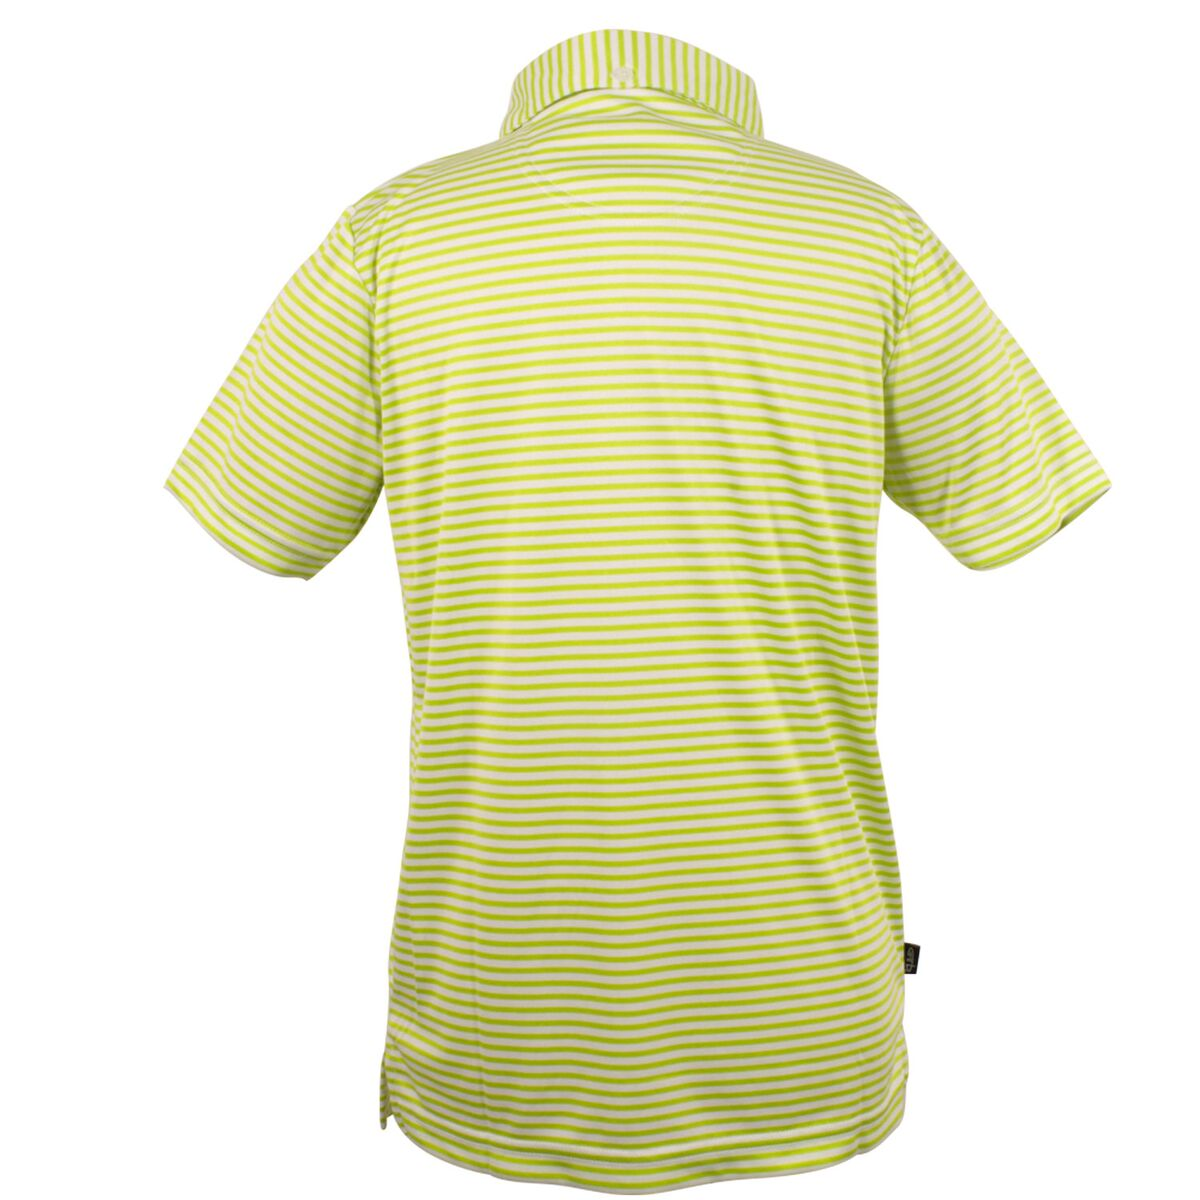 Chandler - Boys Lime Green Striped Polo